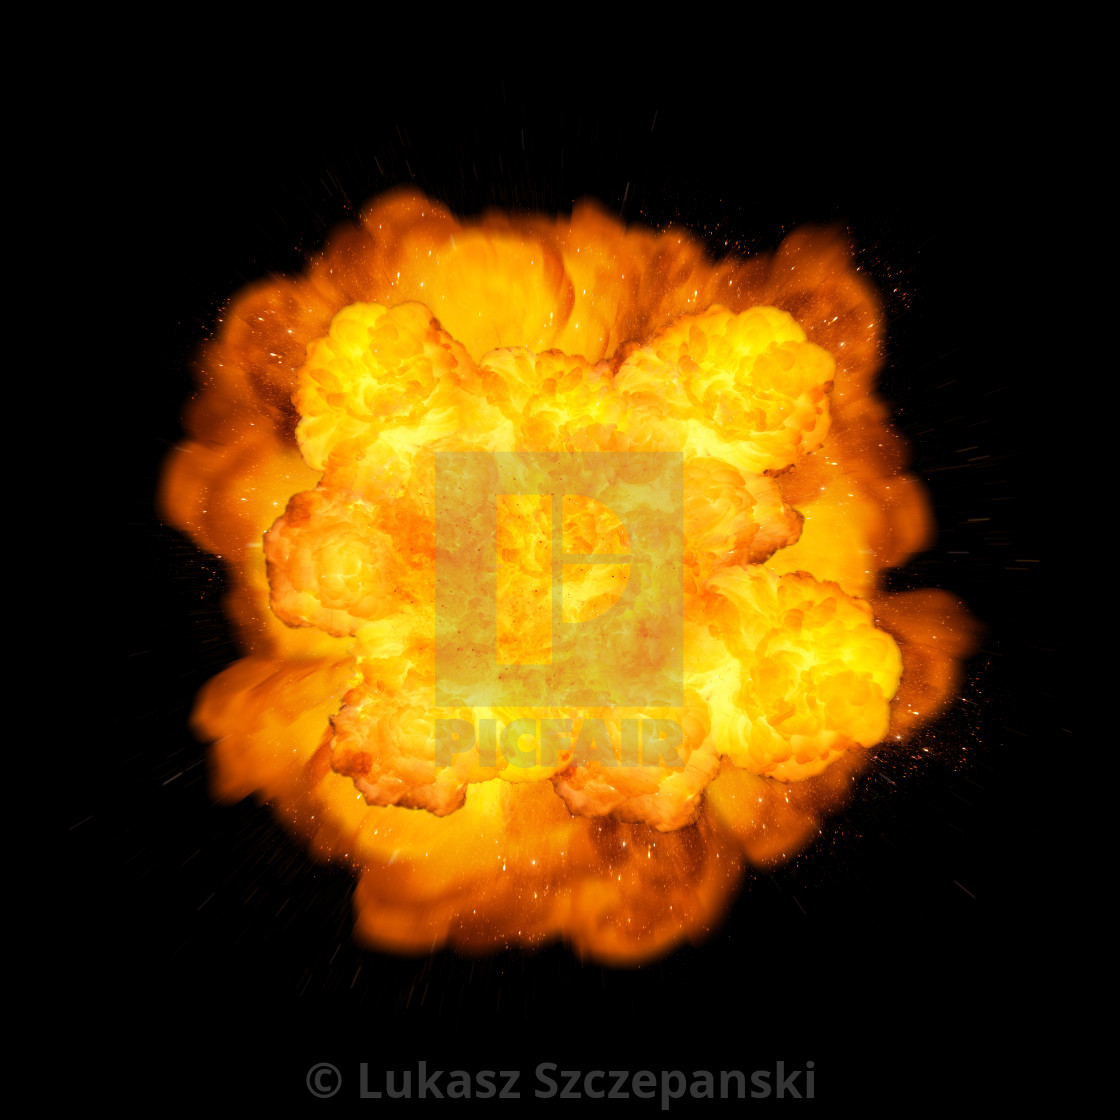 """Extremely massive fire explosion, orange color with sparks isolated on black background"" stock image"